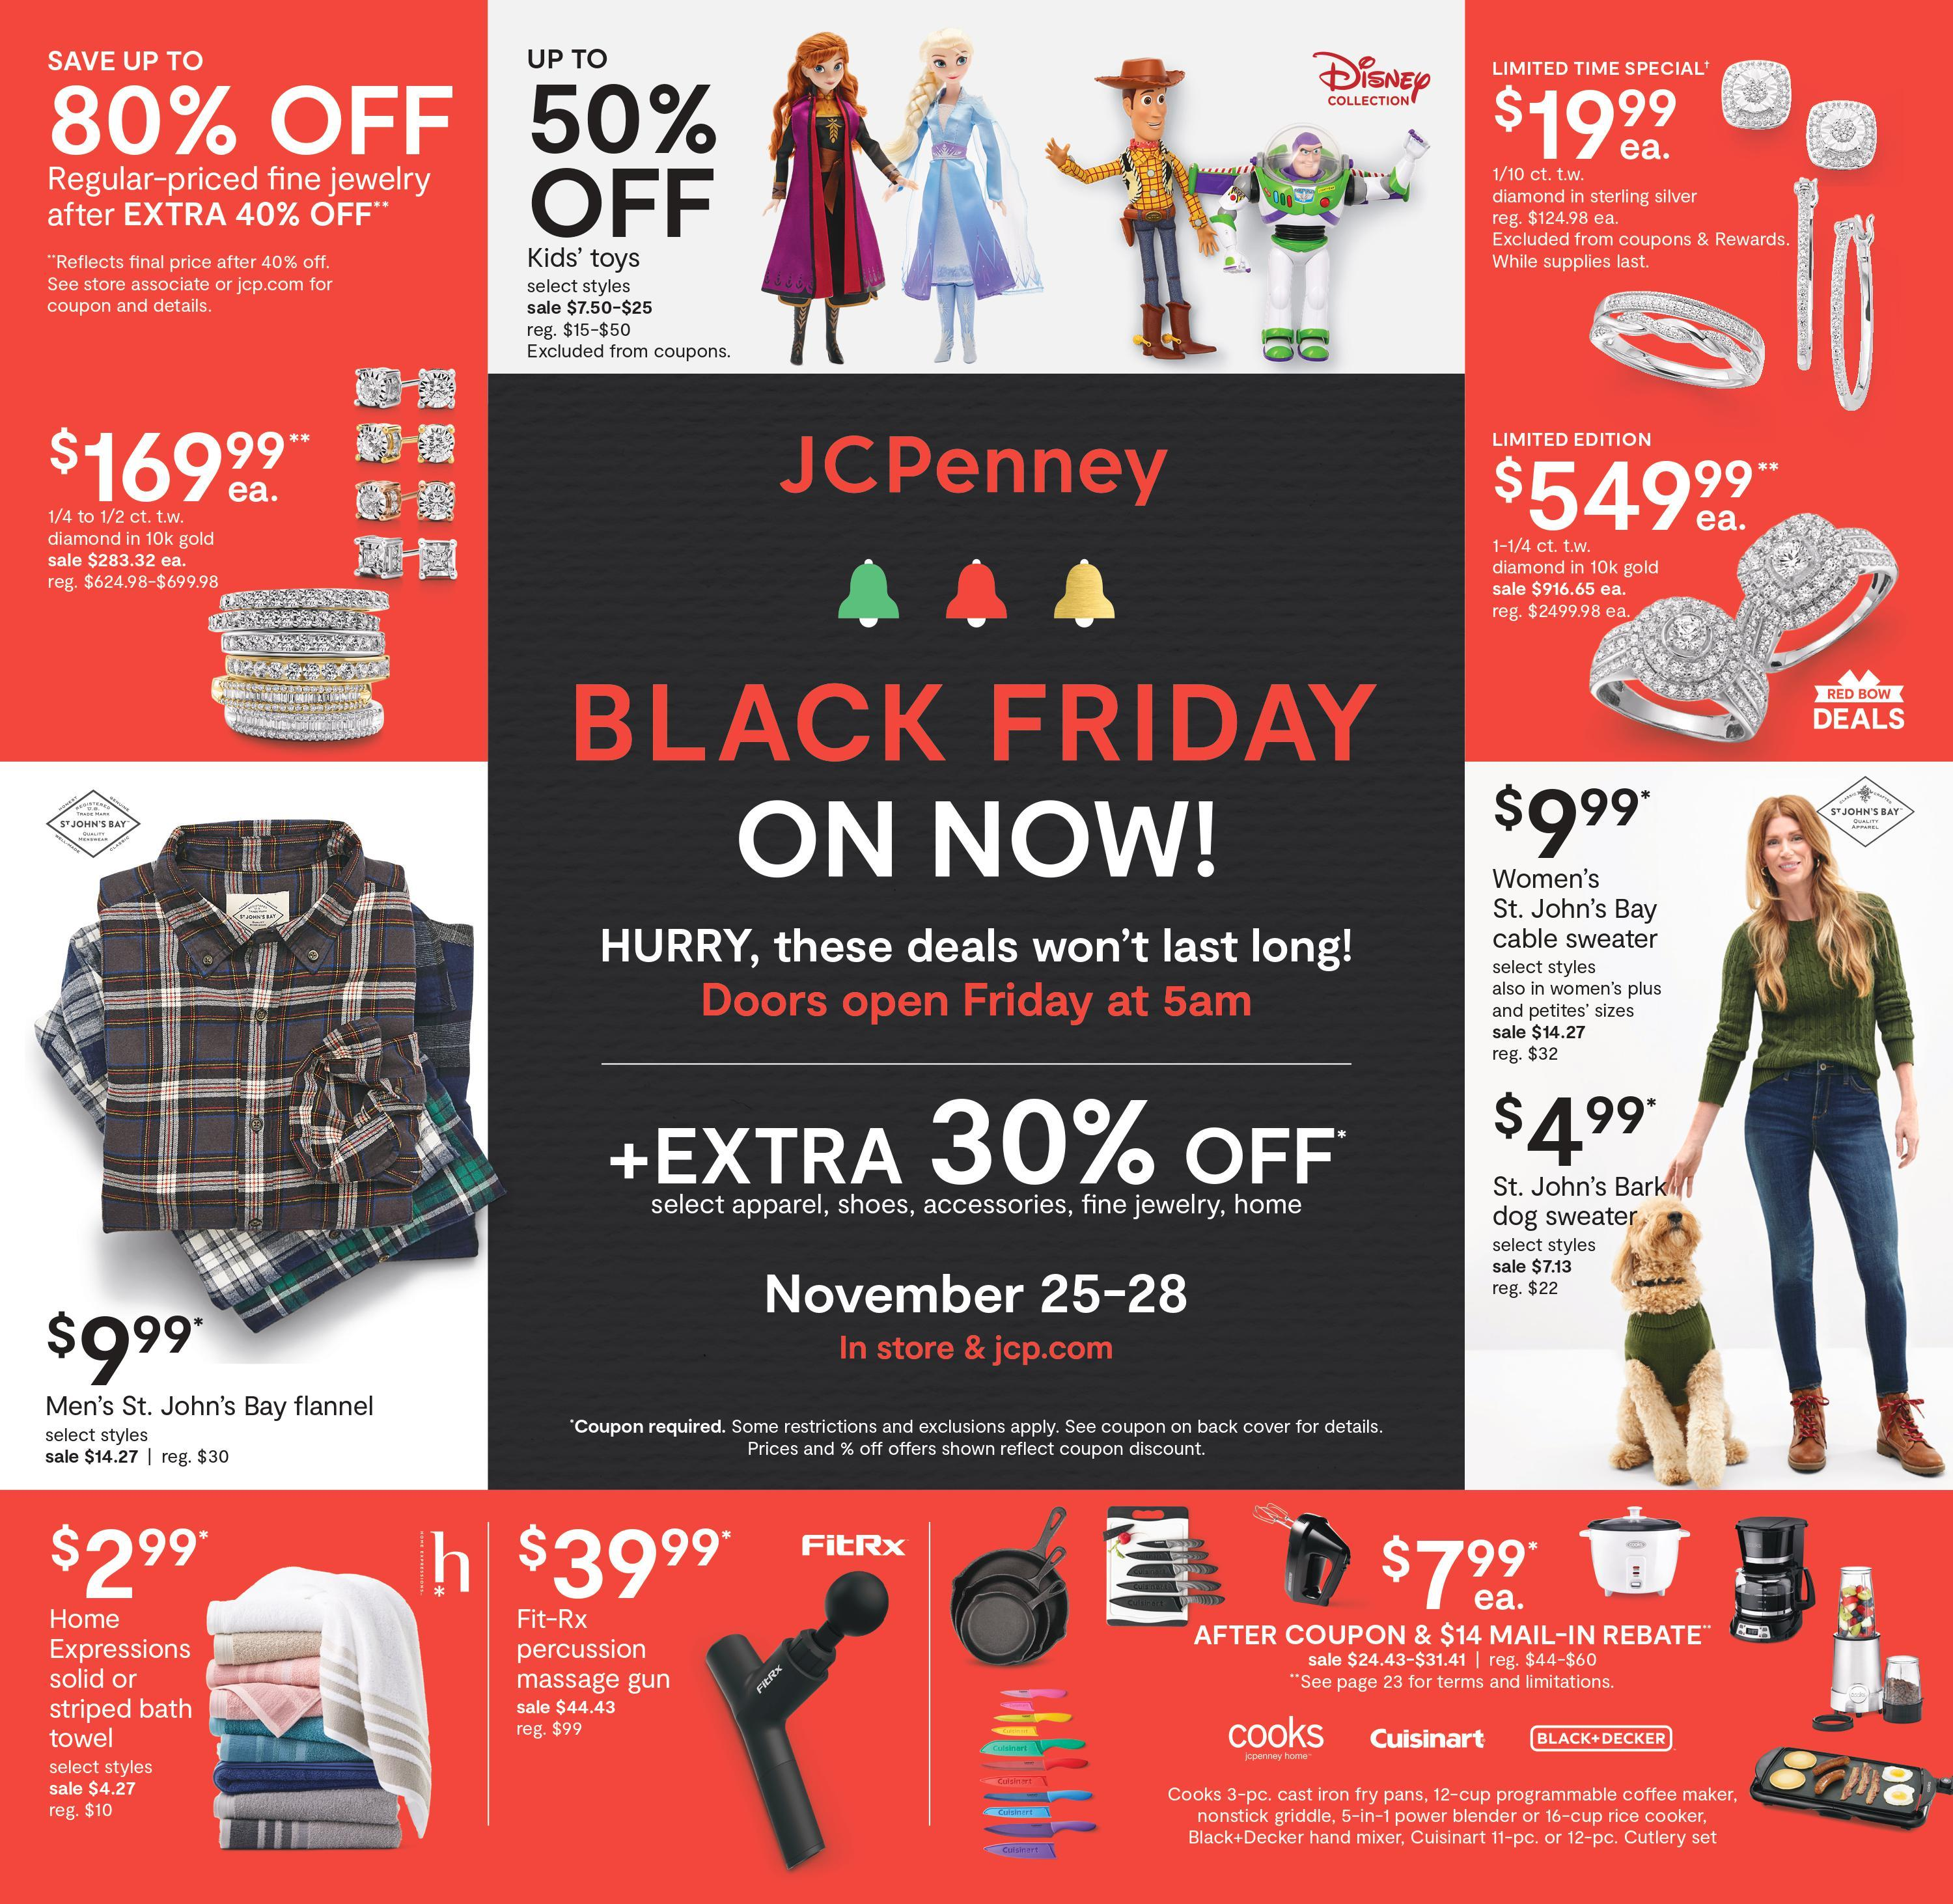 JCPenney Black Friday 2020 Ad